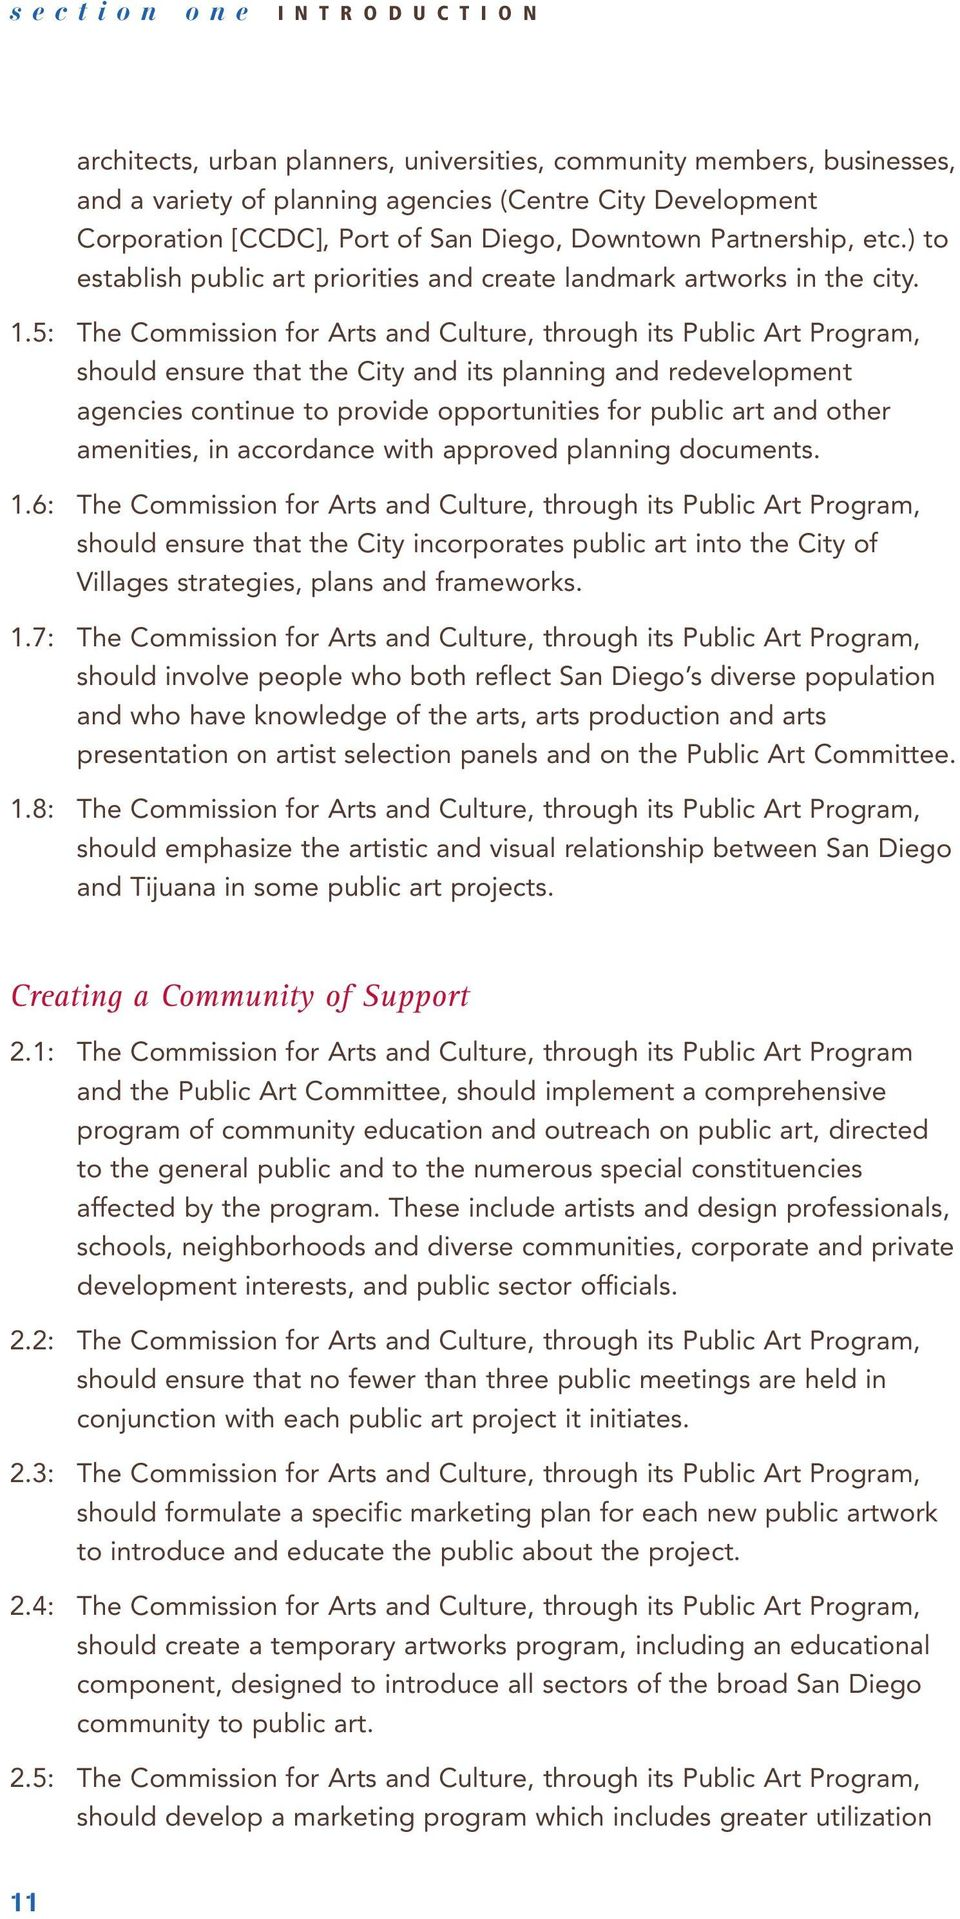 5: The Commission for Arts and Culture, through its Public Art Program, should ensure that the City and its planning and redevelopment agencies continue to provide opportunities for public art and